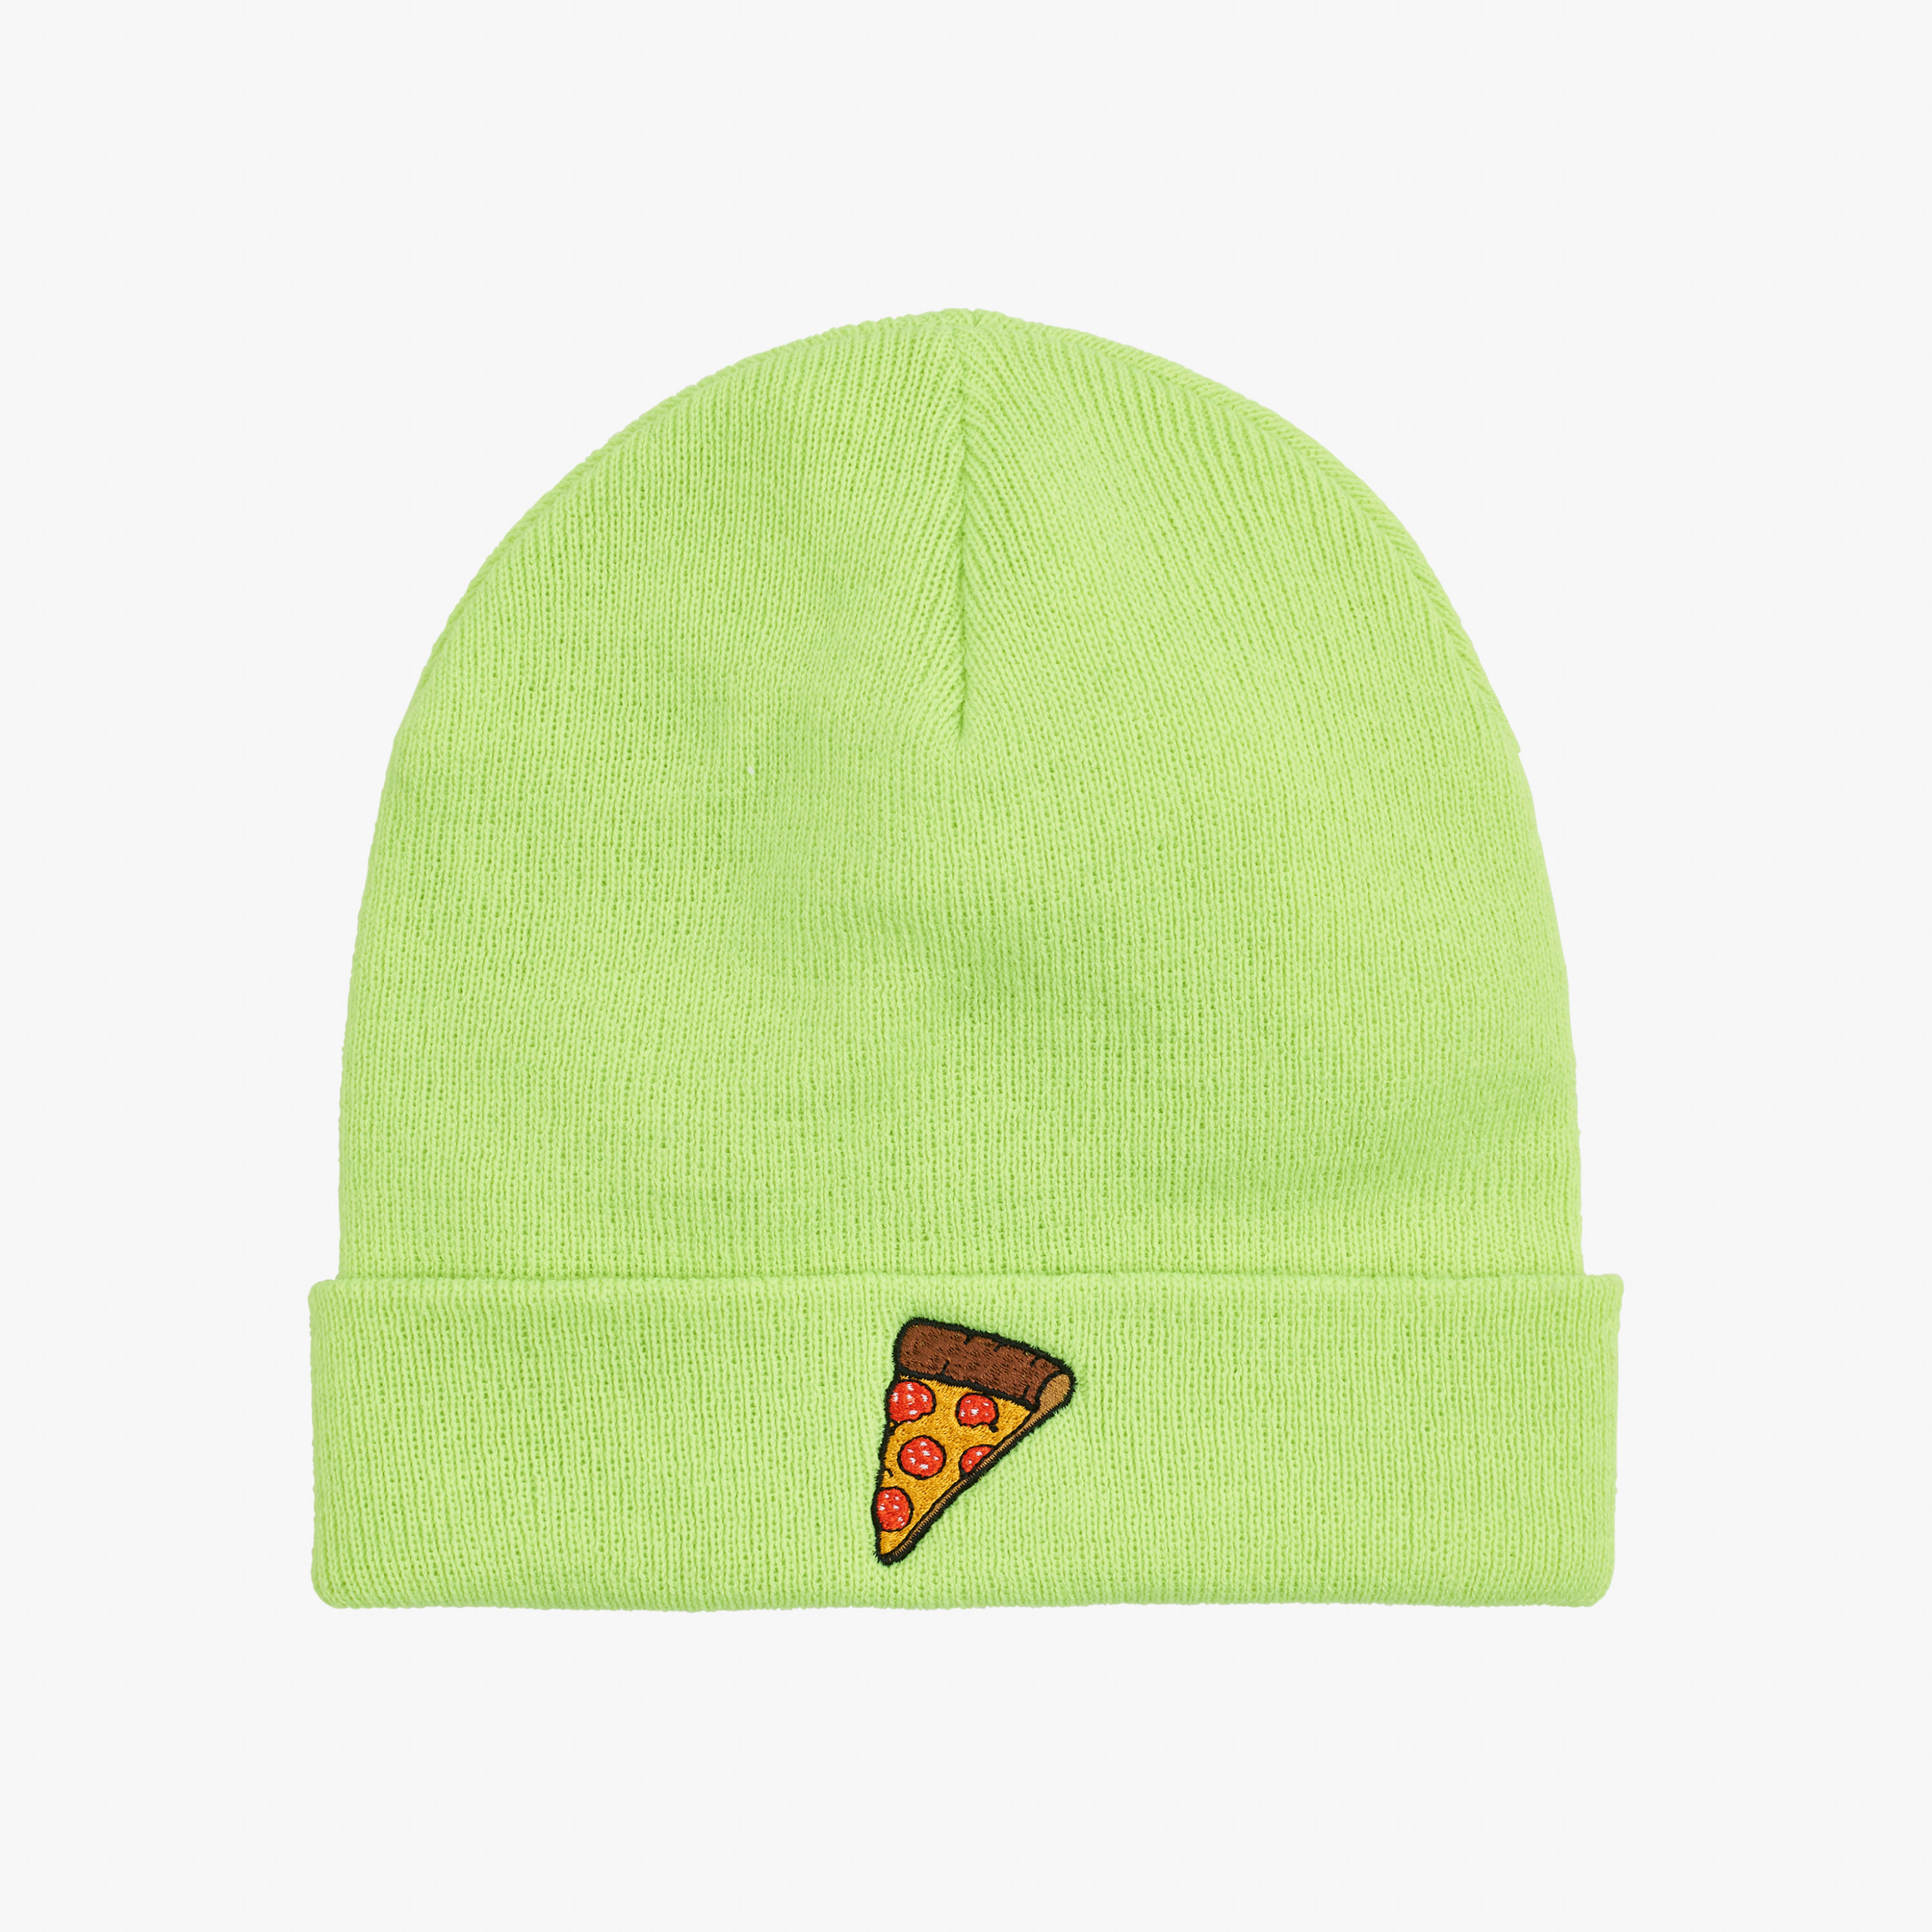 CAP BASIC PATCH YELLOW FLUO